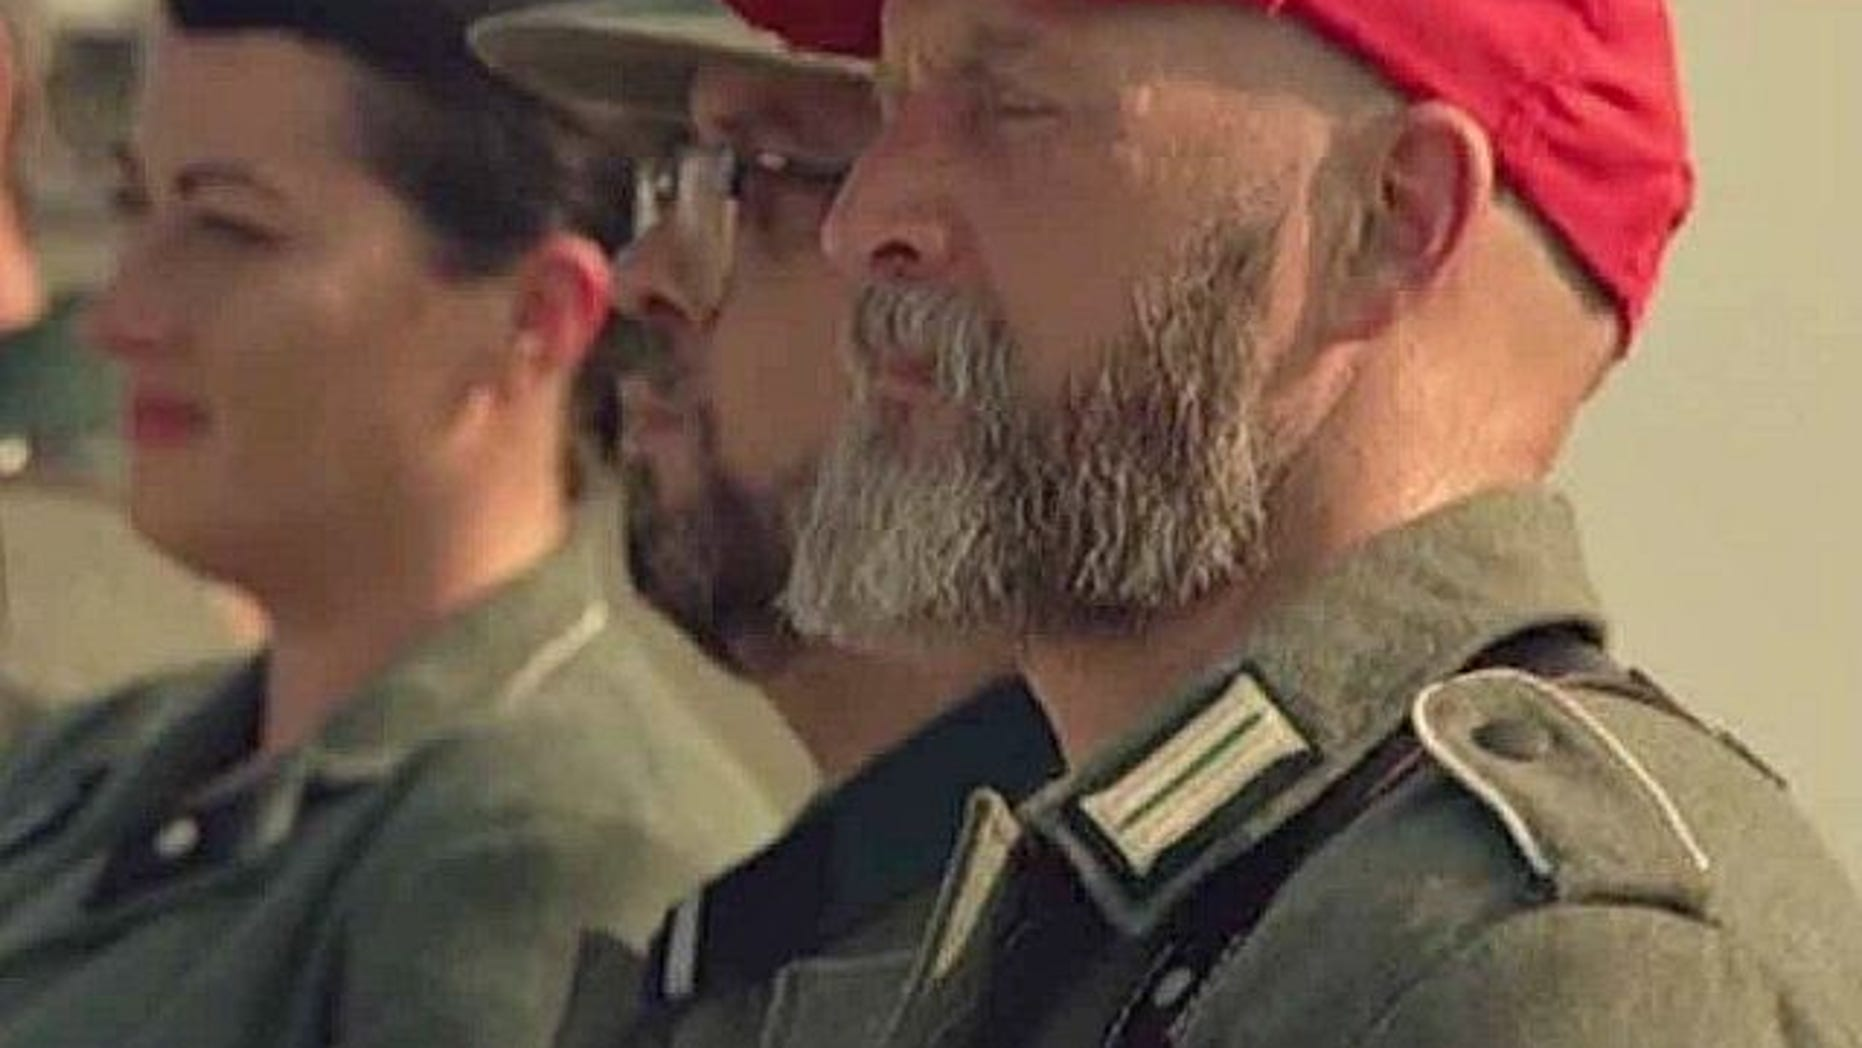 Seth Rogen's AMC series 'Preacher' features Nazi wearing MAGA hat in season finale.